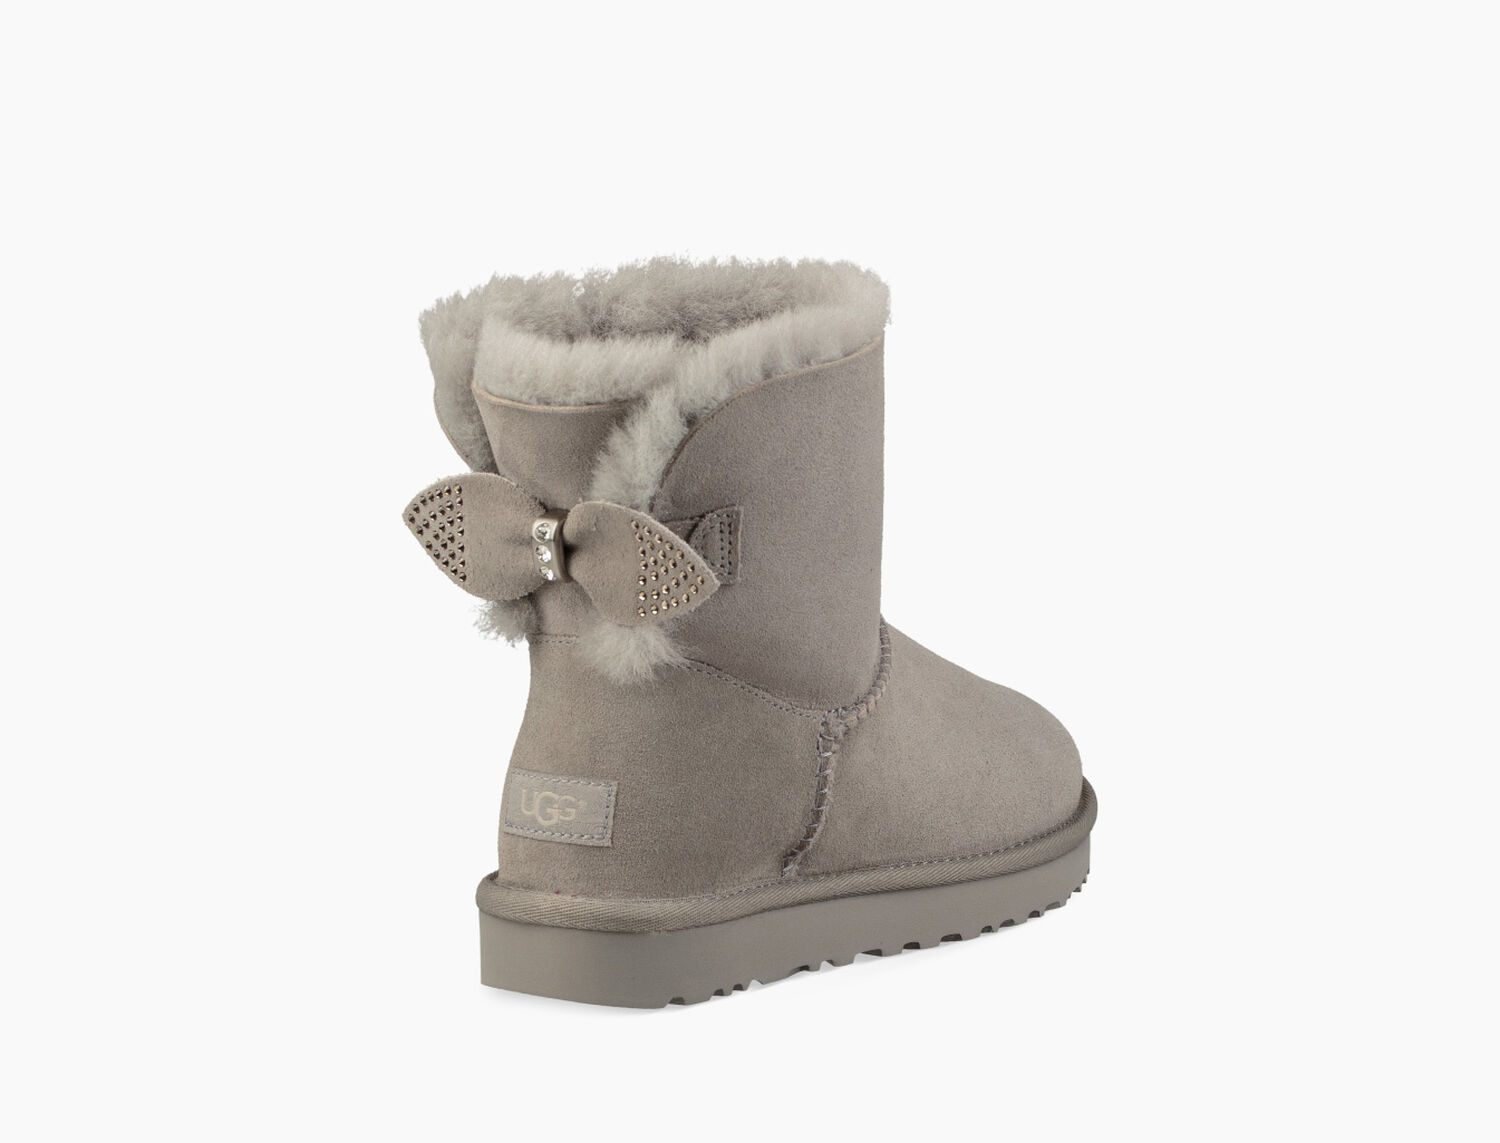 70ab7012f3b Women's Share this product Sparkle Bow Mini Boot